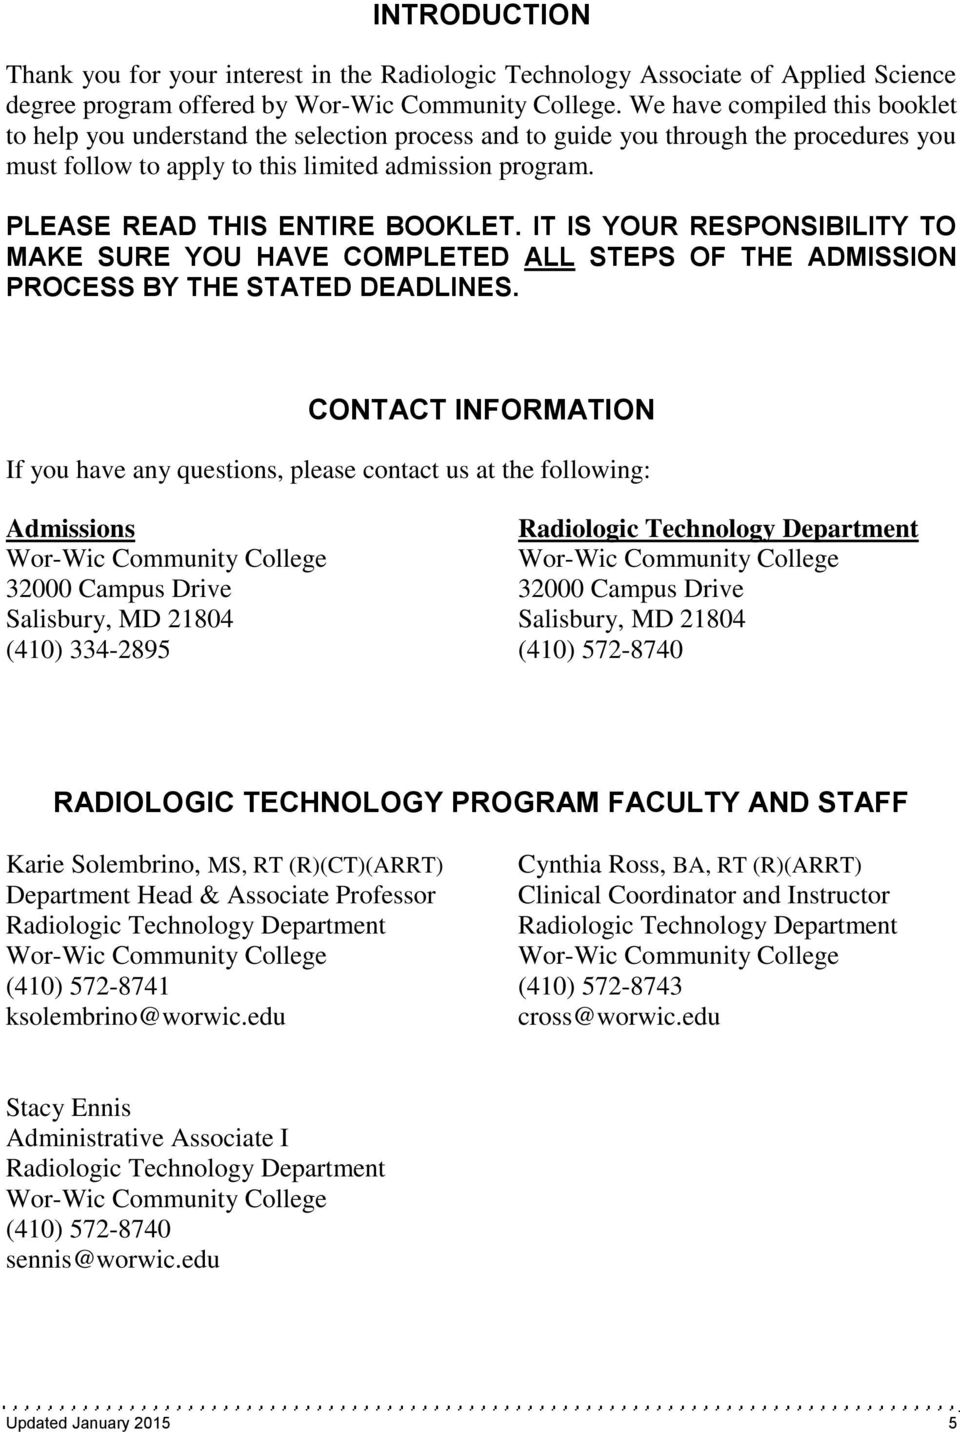 PLEASE READ THIS ENTIRE BOOKLET. IT IS YOUR RESPONSIBILITY TO MAKE SURE YOU HAVE COMPLETED ALL STEPS OF THE ADMISSION PROCESS BY THE STATED DEADLINES.